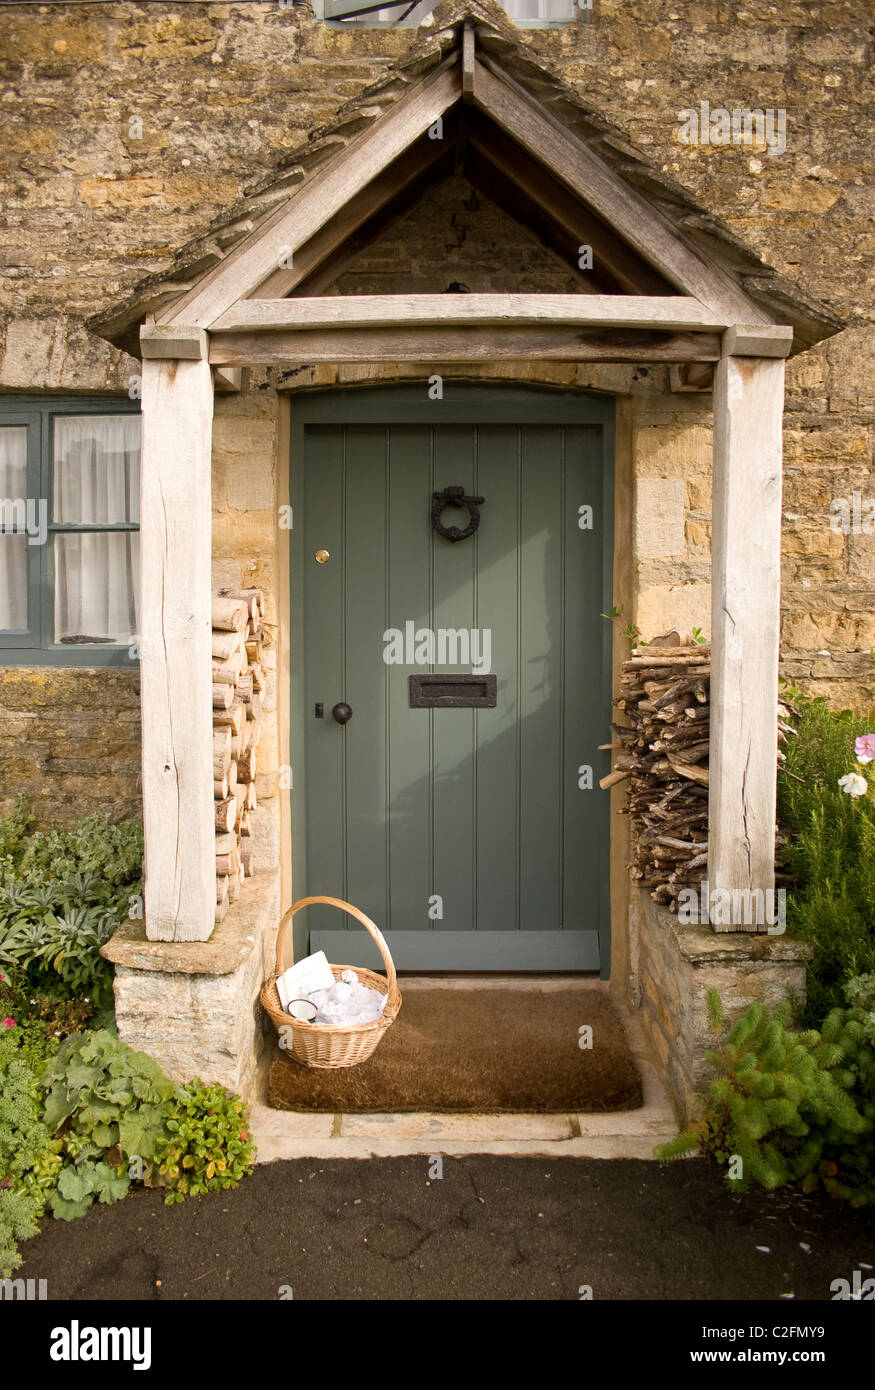 stone cotswold wood wall door porch gable side structure flat mortar